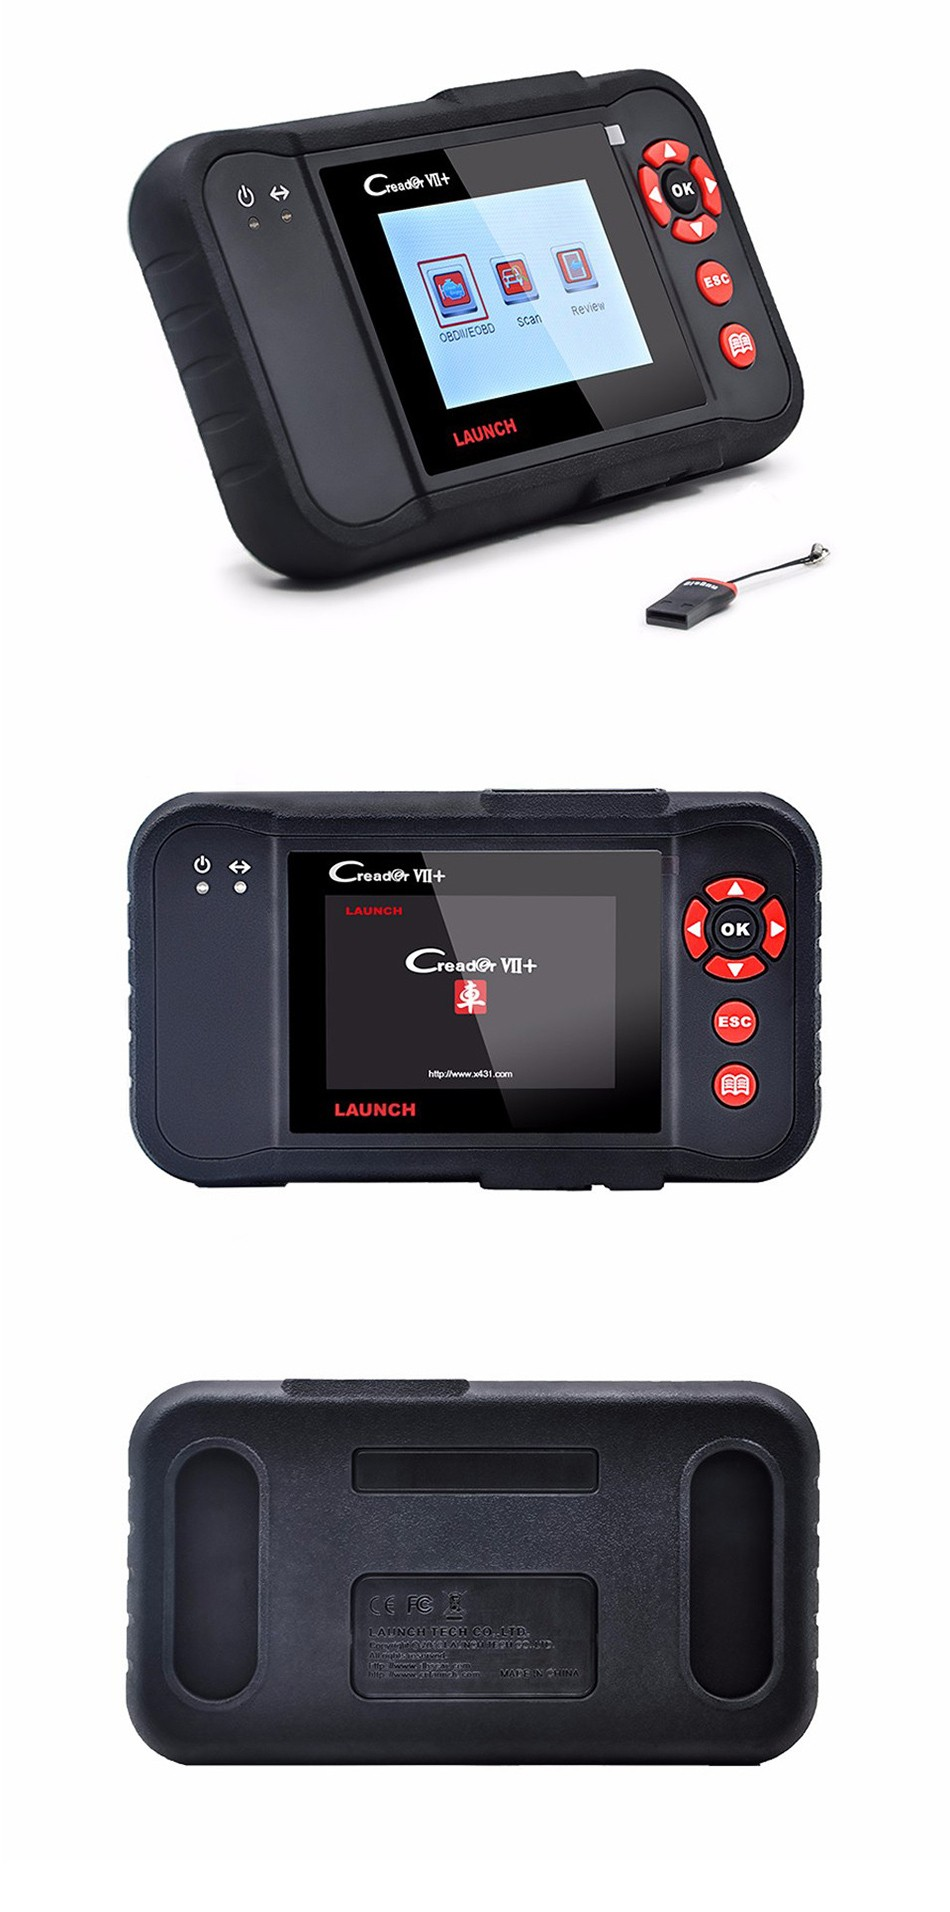 Original Auto Code Reader Launch X431 Creader VII+ Creader VII Plus Update Via Offical Website OBDII Scanner Same as CRP123